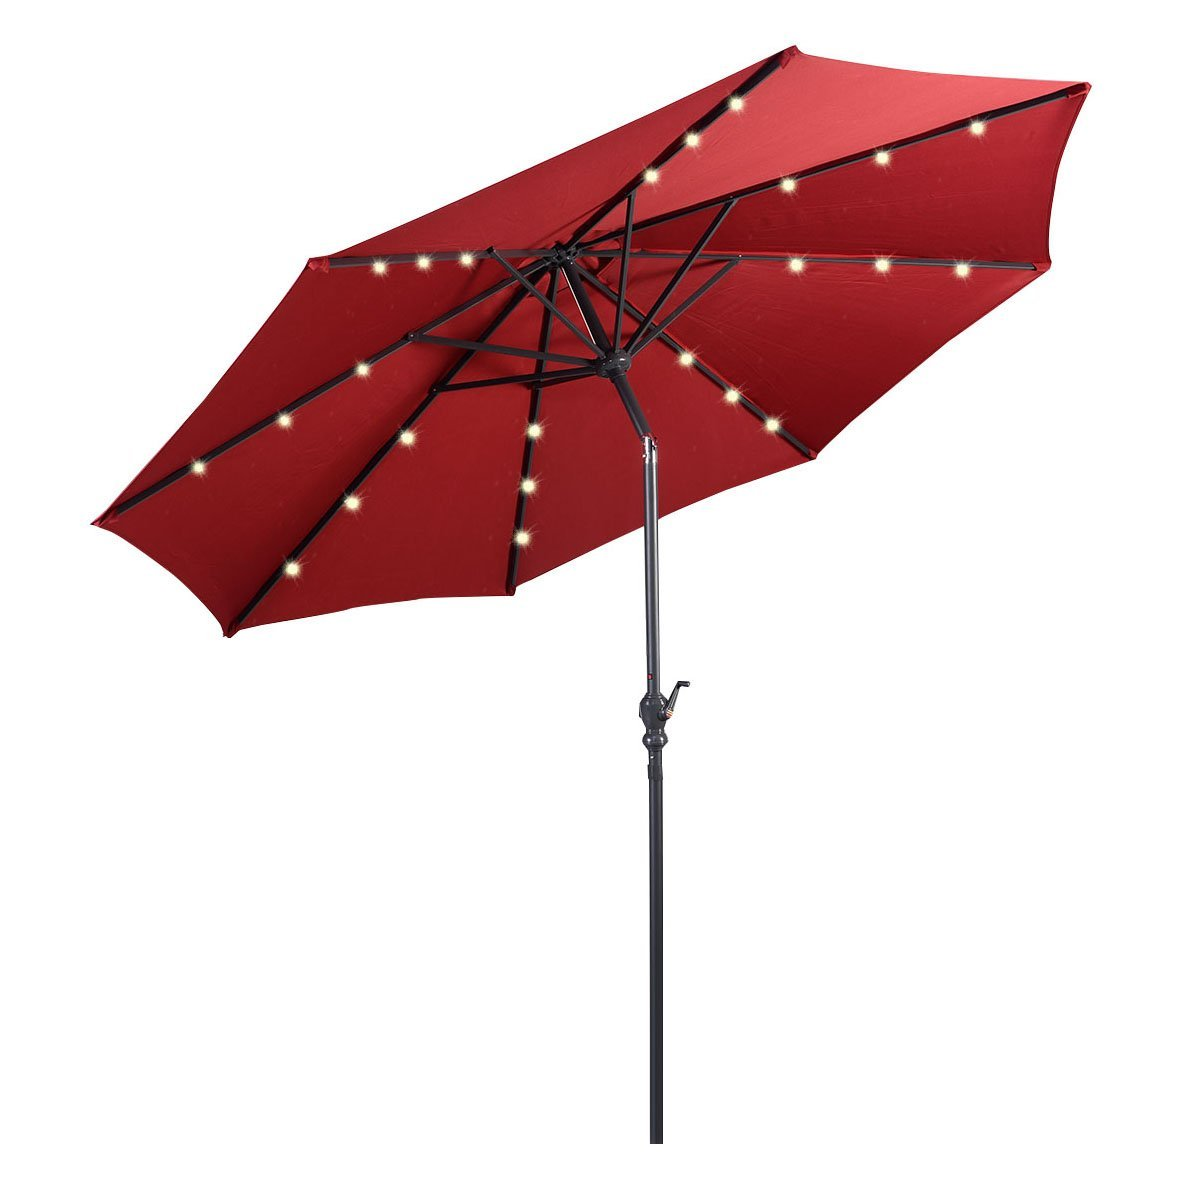 Giantex Patio Umbrella With Solar LED Lighting